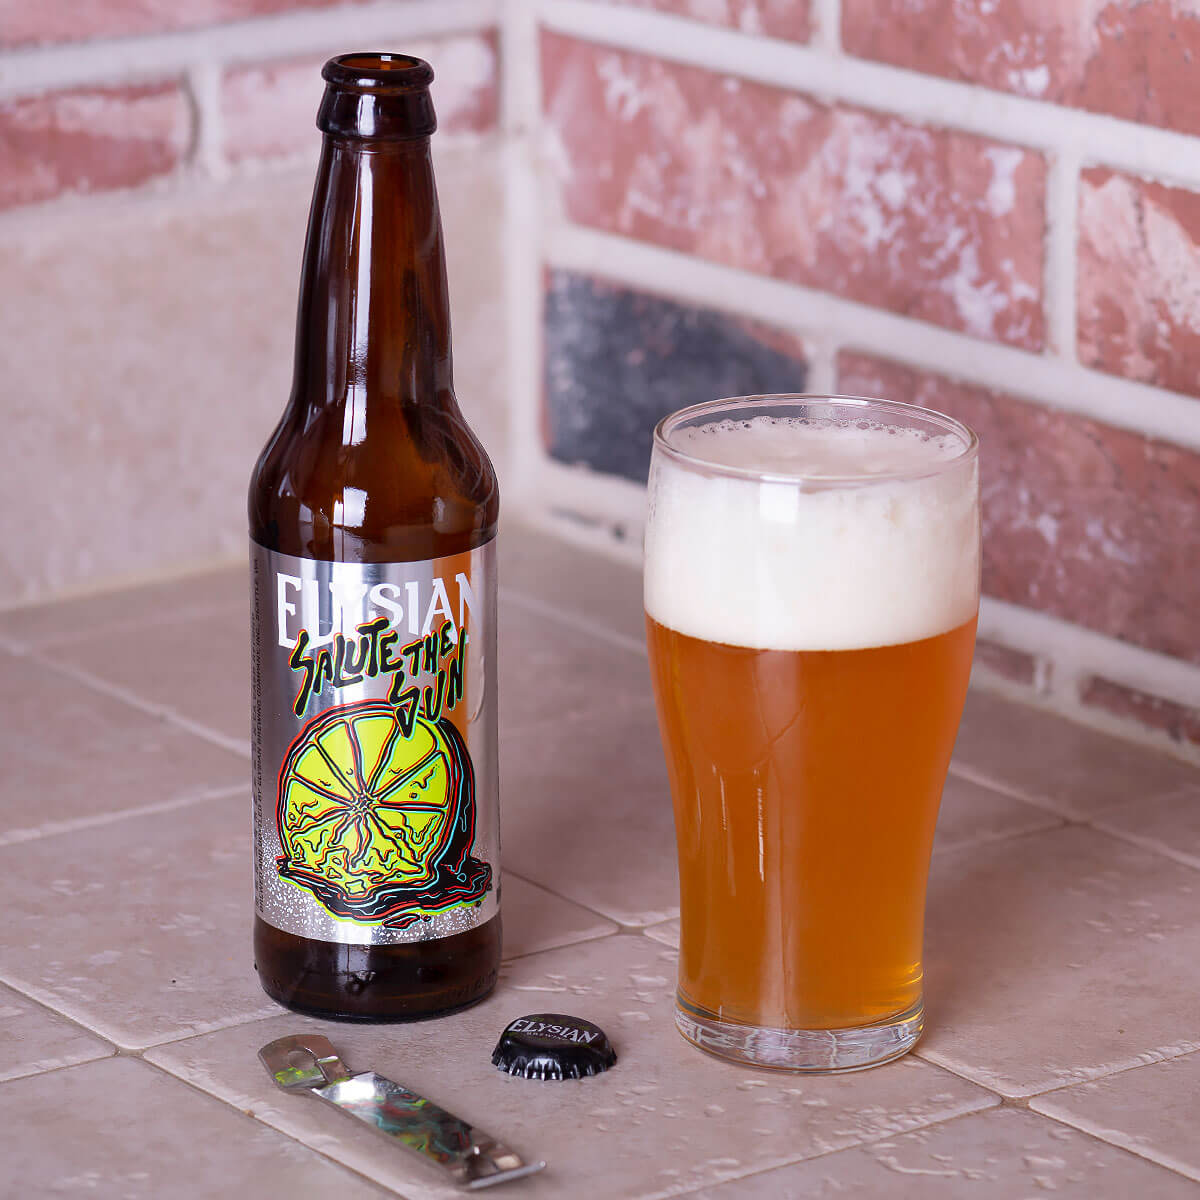 Salute the Sun, an American Pale by Elysian Brewing Company